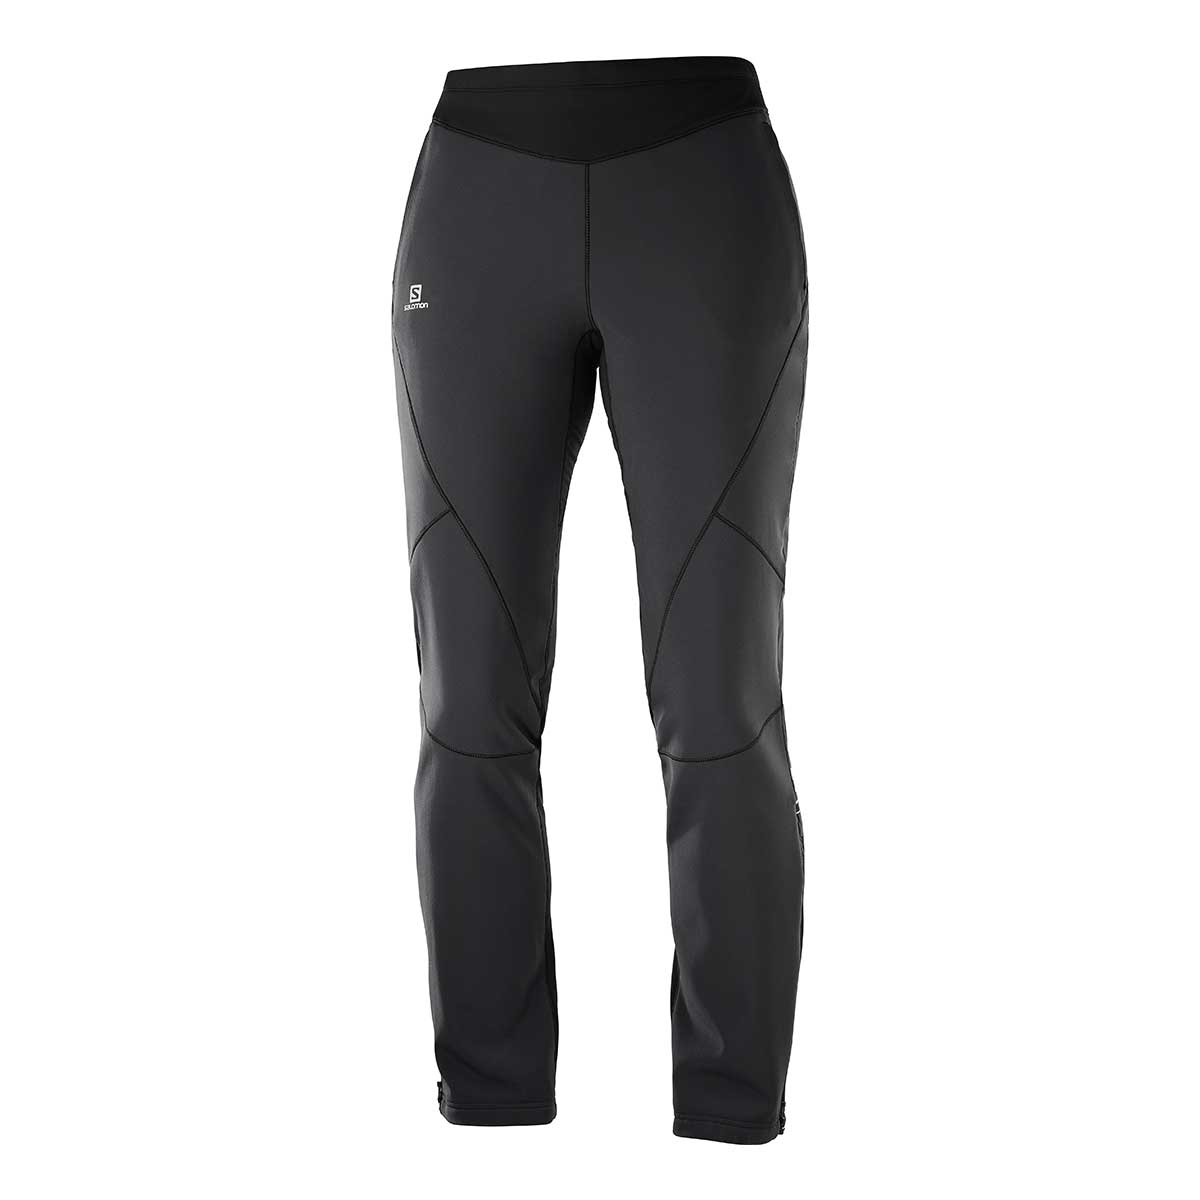 Salomon Women's Lightning Warm Softshell Pant in Black